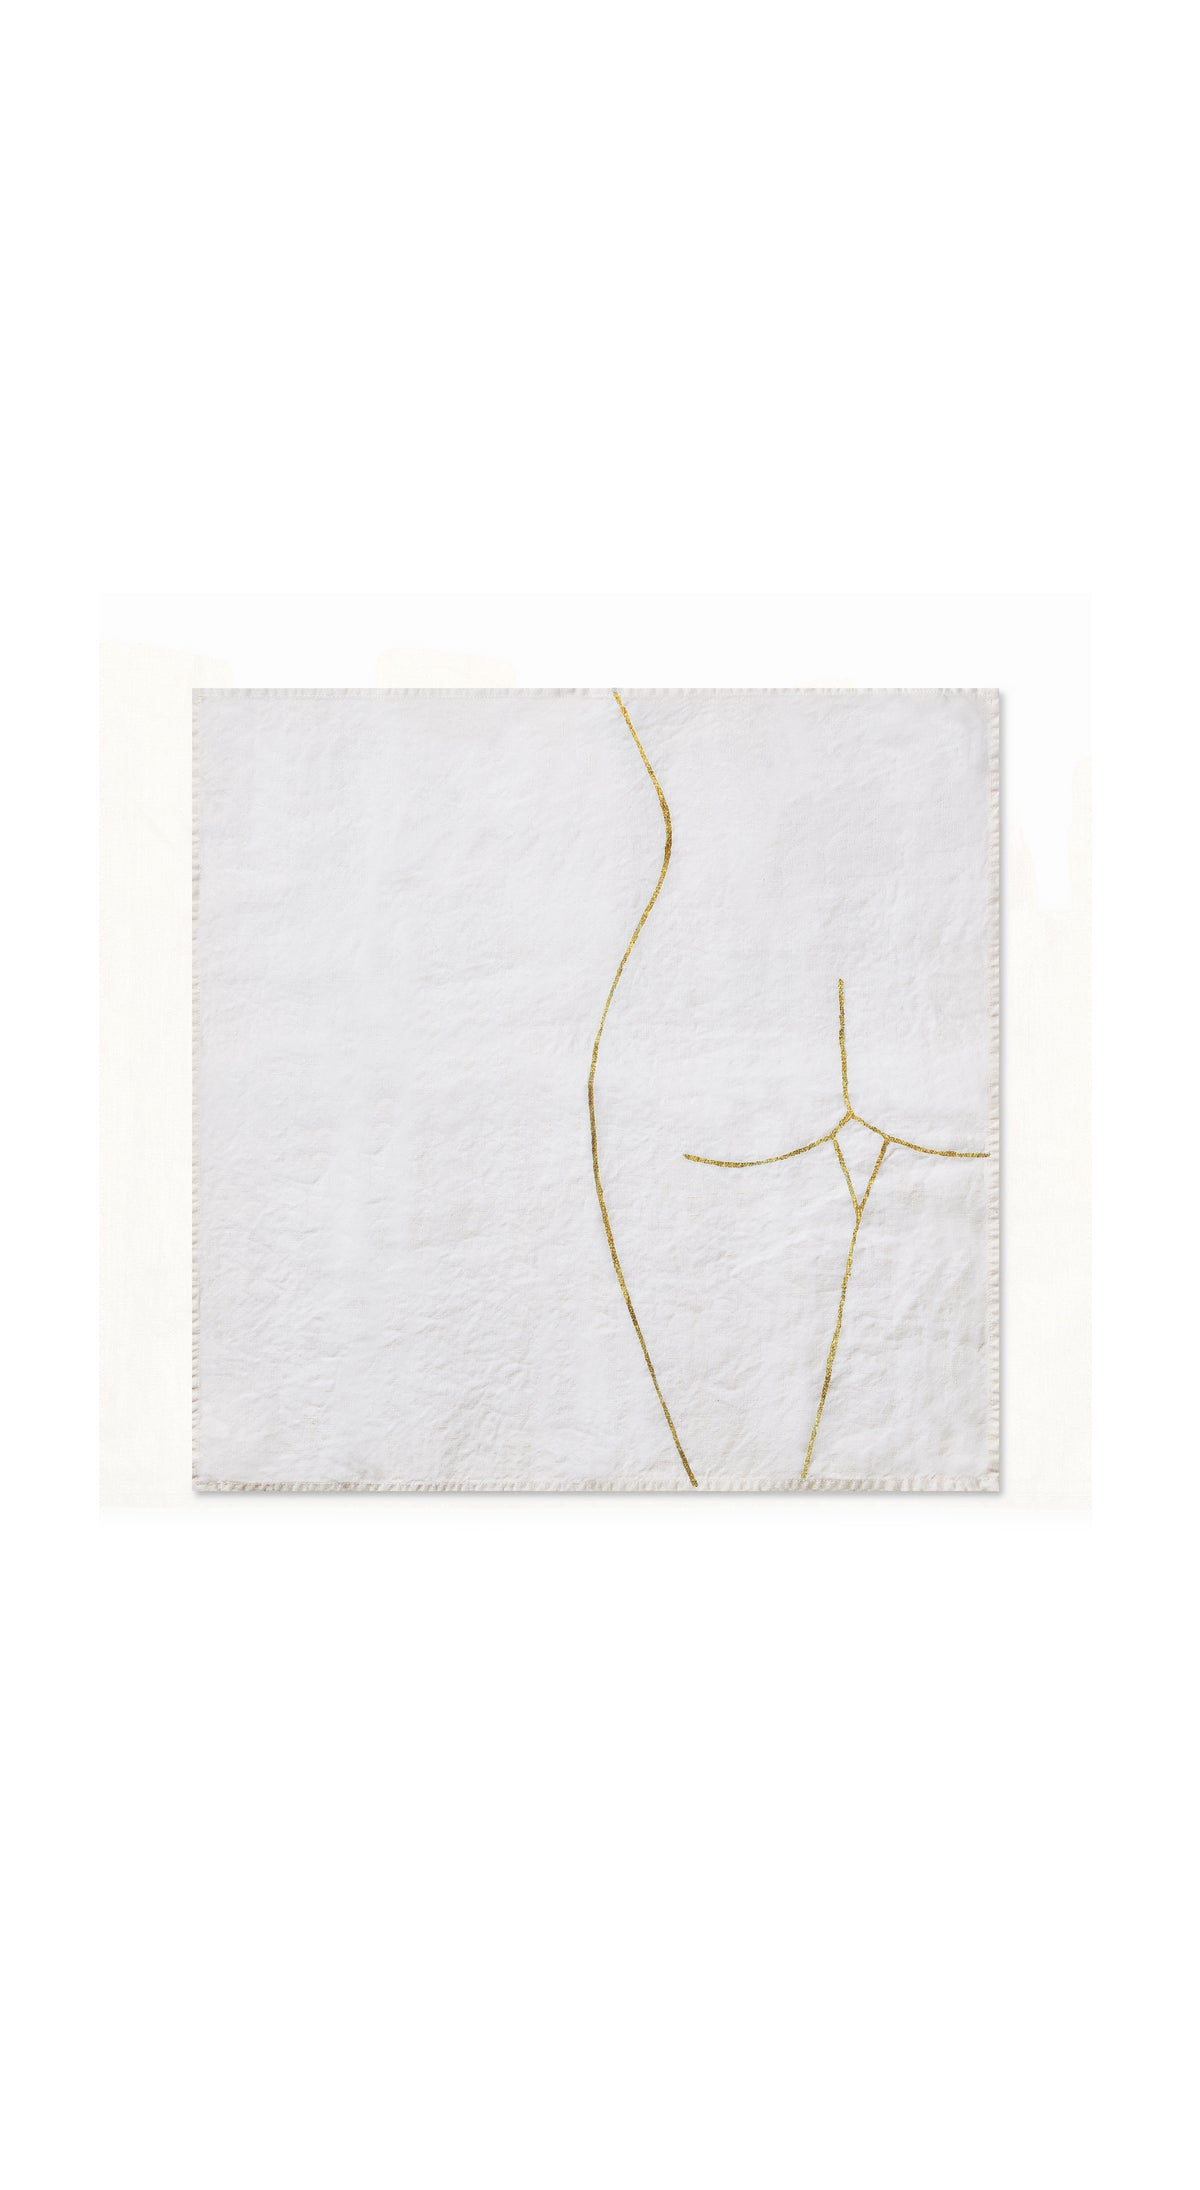 "Nude Linen Napkin ""Female Rear"" in Gold"